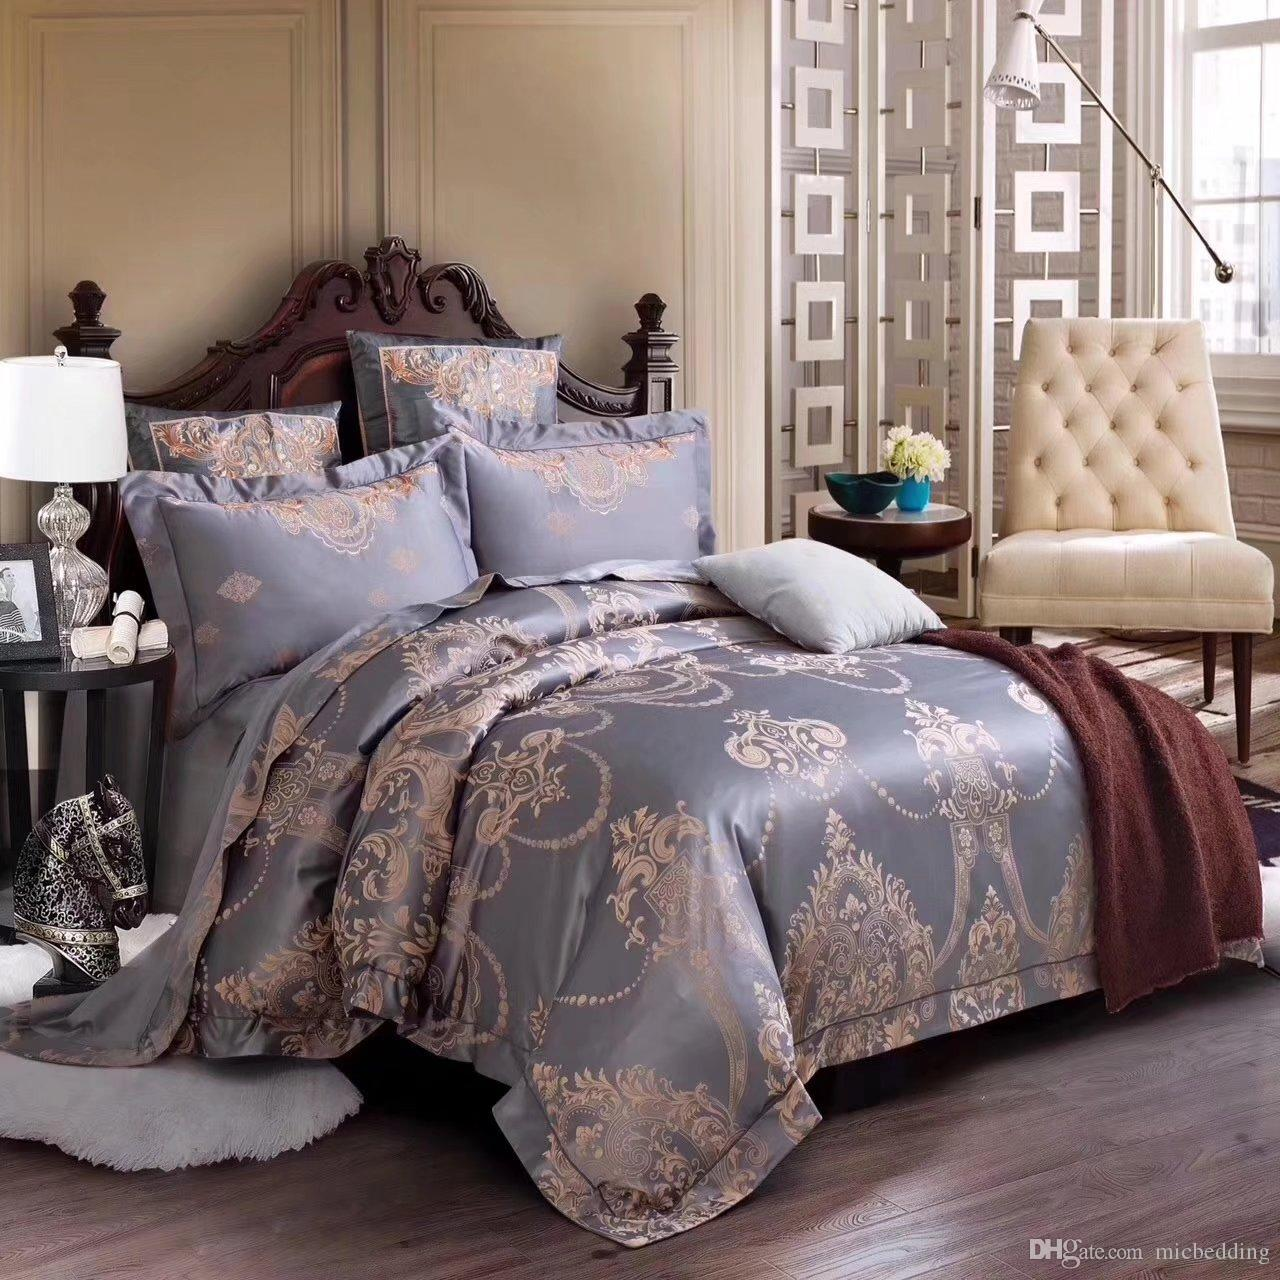 satin jacquare embroidery designs feeling soft color luxuarant and noble bed sheet bedding set 100%cotton blue beige purple color 1756